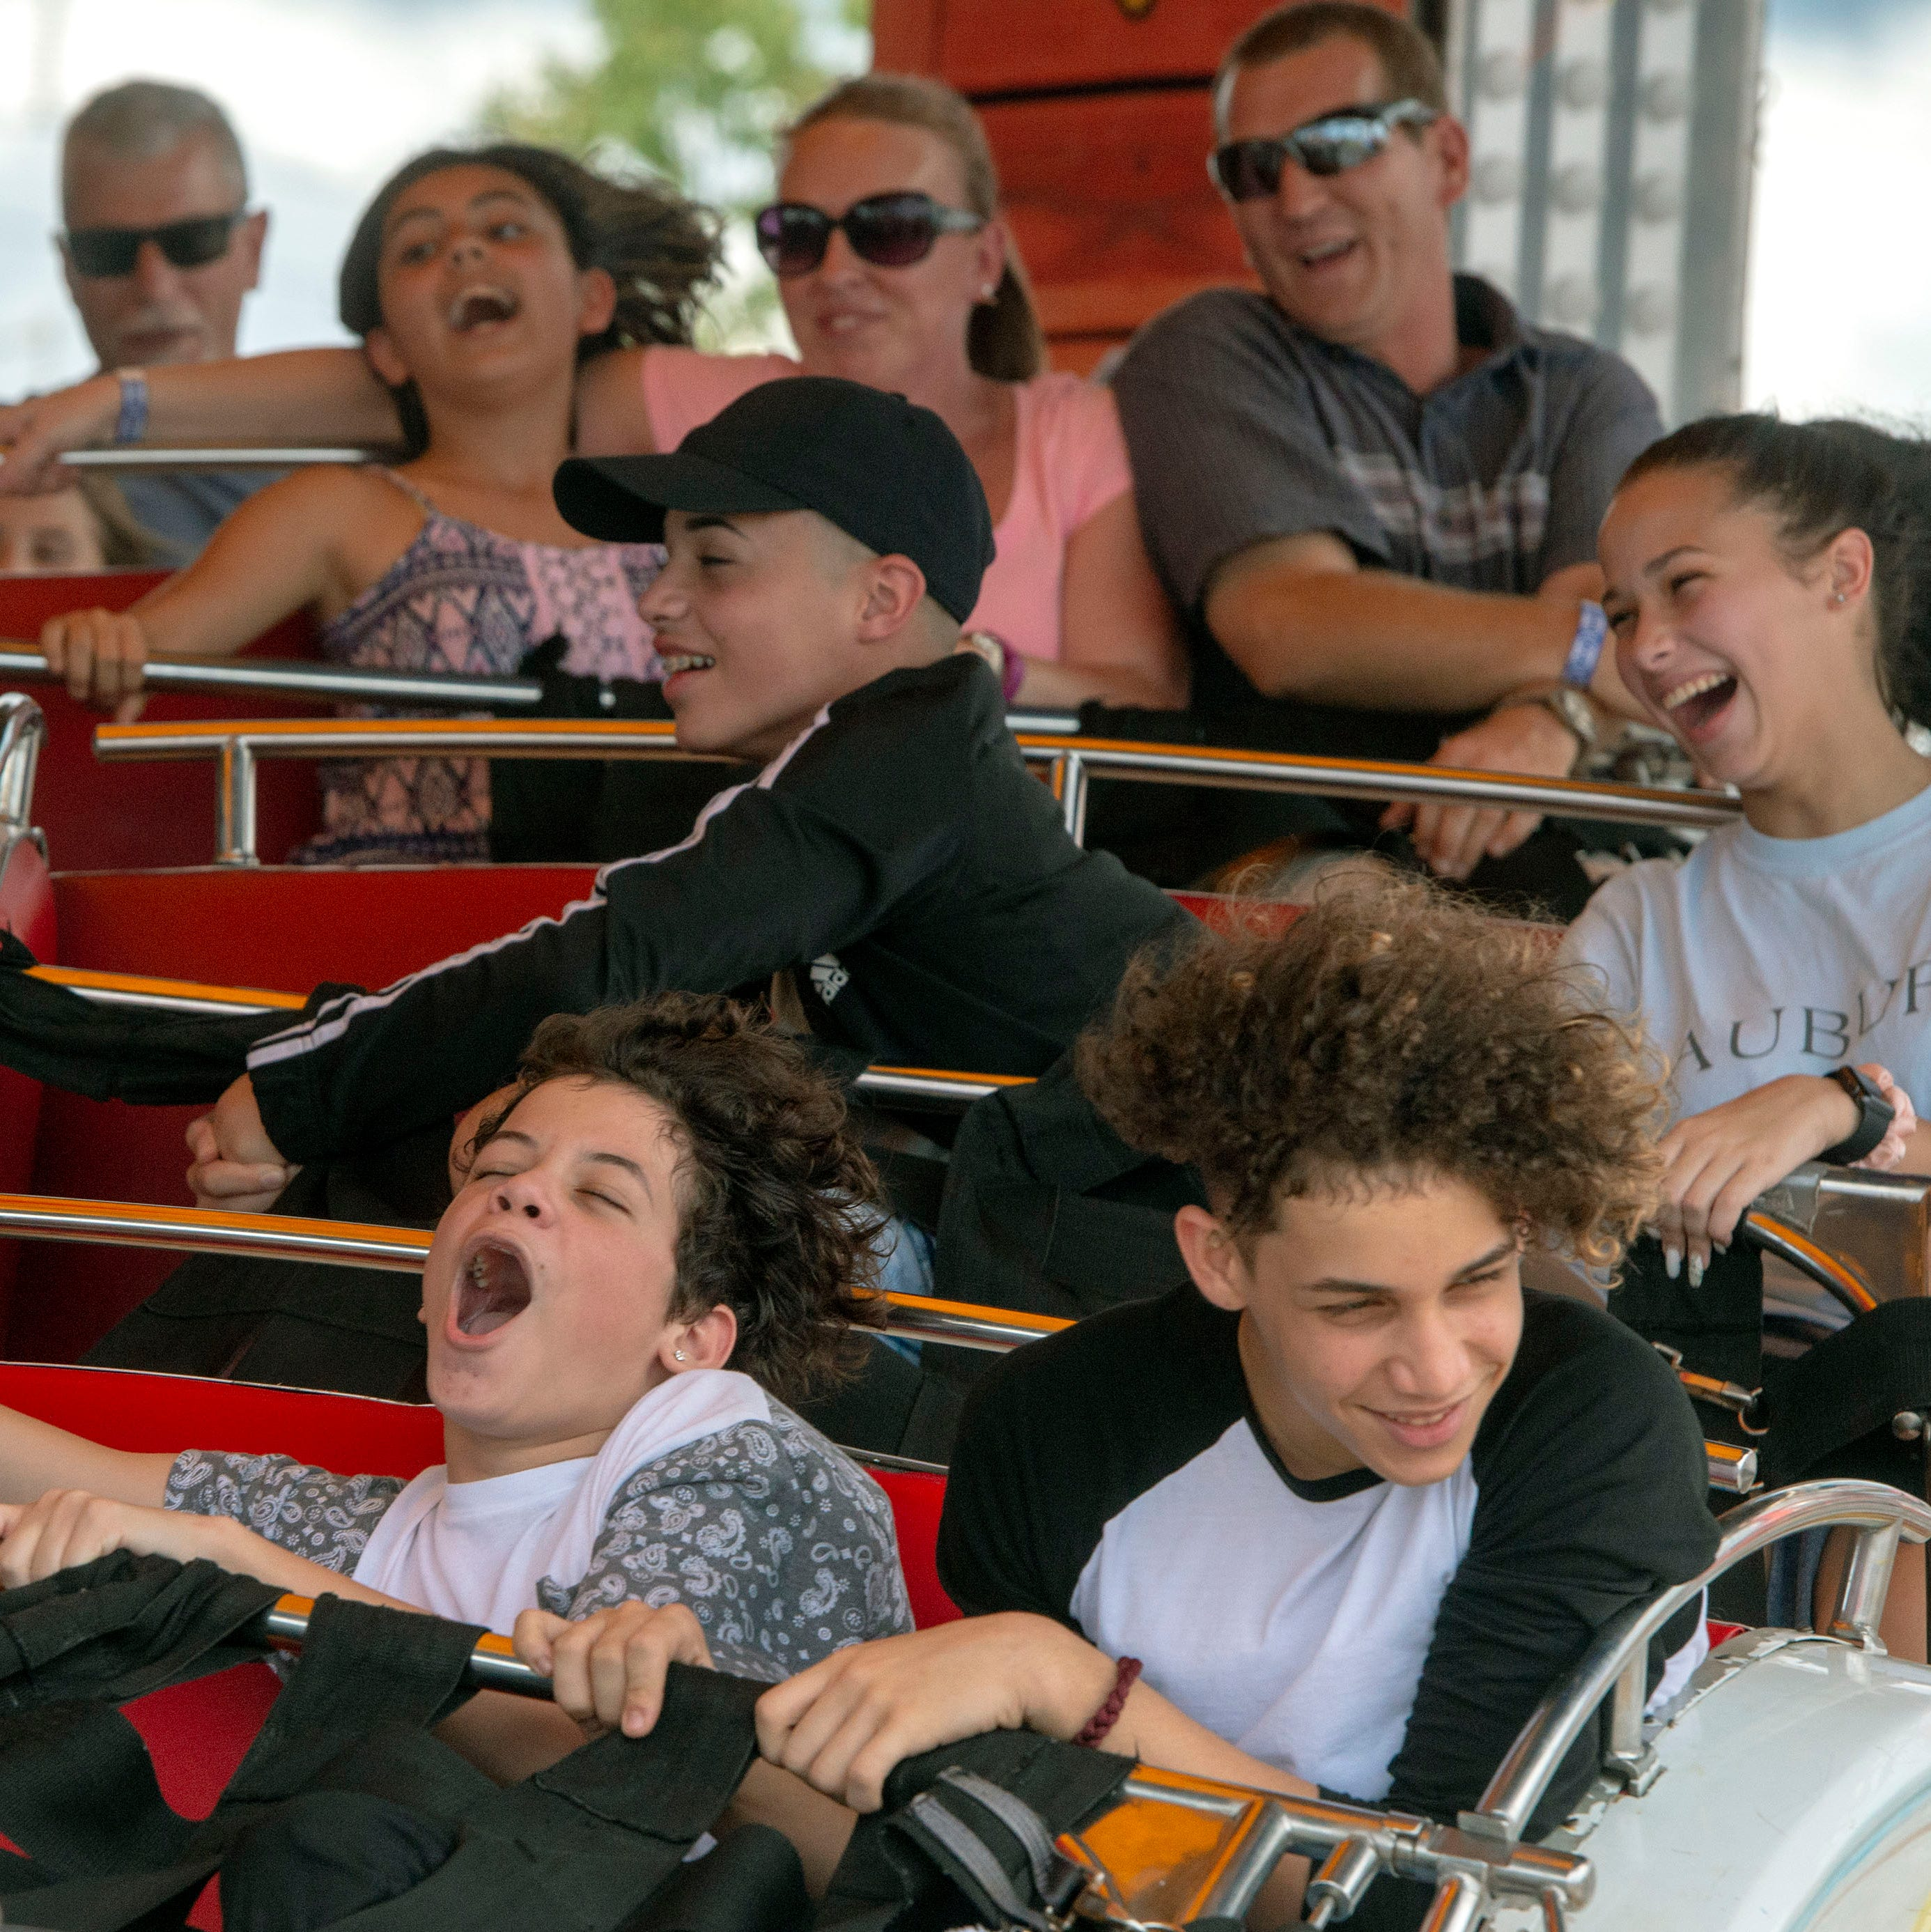 PHOTOS:Pensacola Interstate Fair brings thrills and chills Saturday